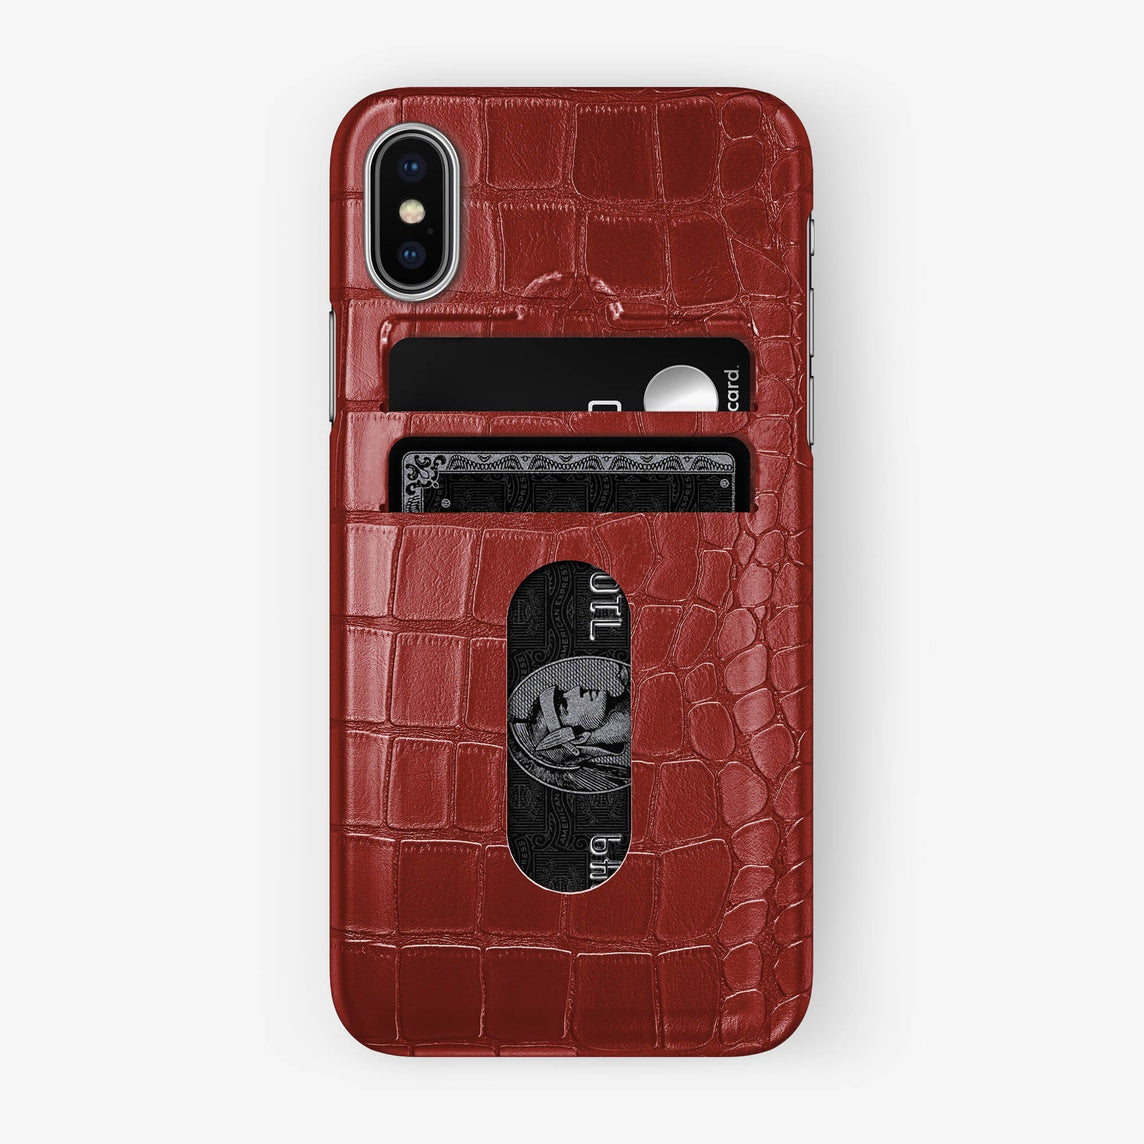 Alligator Card Holder Case iPhone X/Xs | Red - Stainless Steel - Hadoro